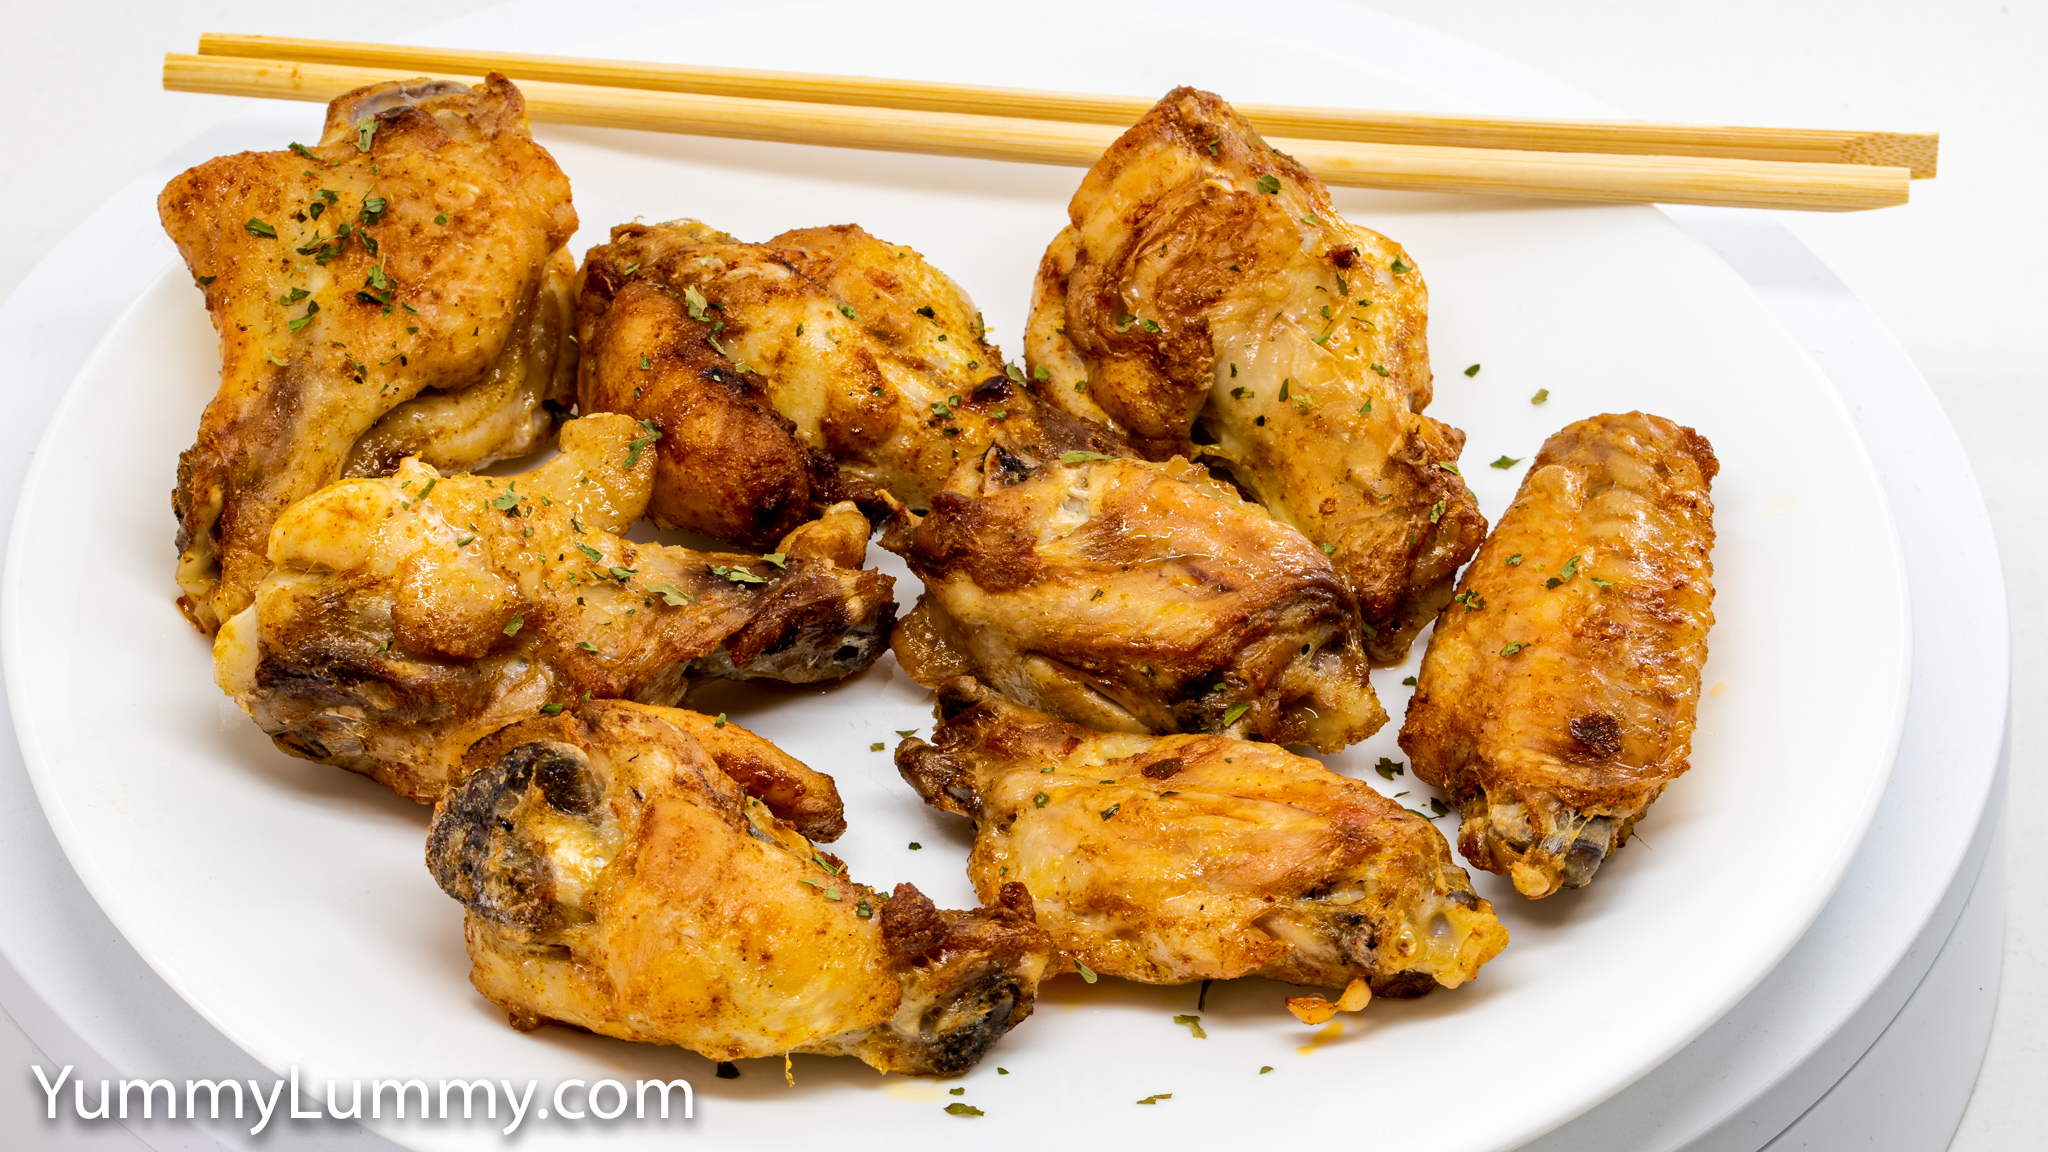 PHotograph of Chicken wings with Sichuan seasoning. Gary Lum.